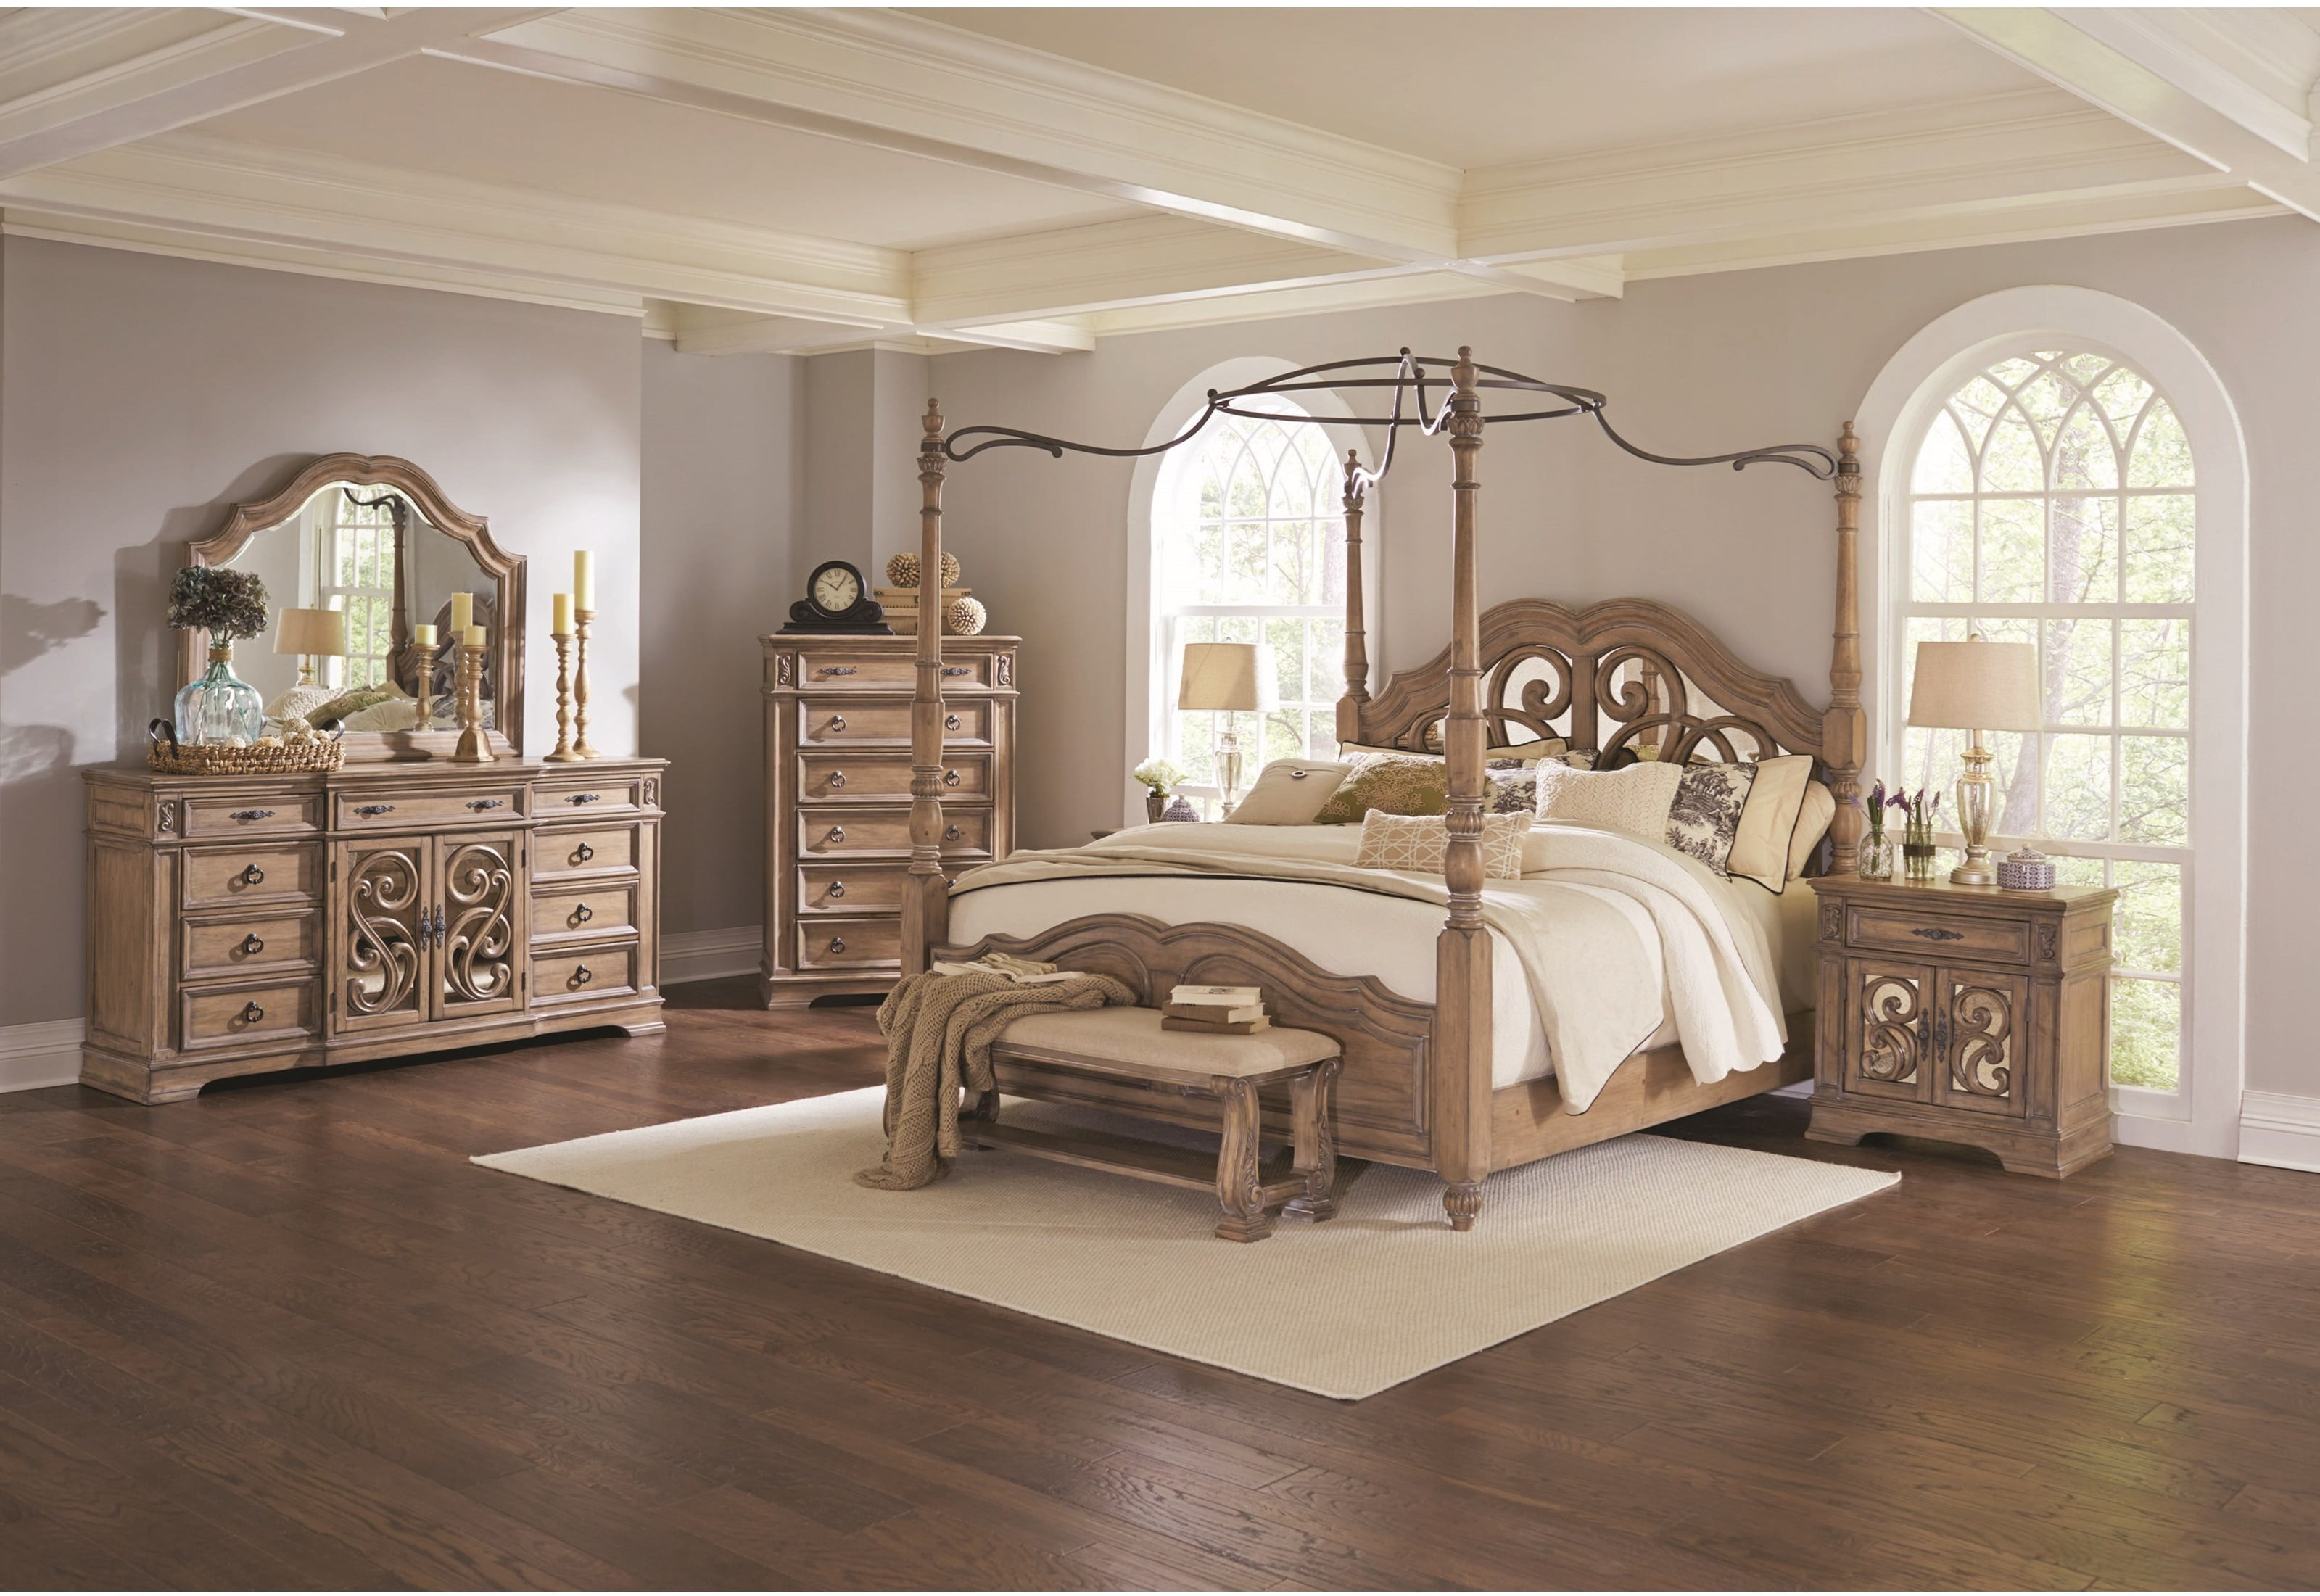 Image of: Traditional Canopy Queen Size Bed Bedroom Furniture 4pc Set Light Finish Beautiful Matching Dresser Mirror Nightstand Walmart Com Walmart Com